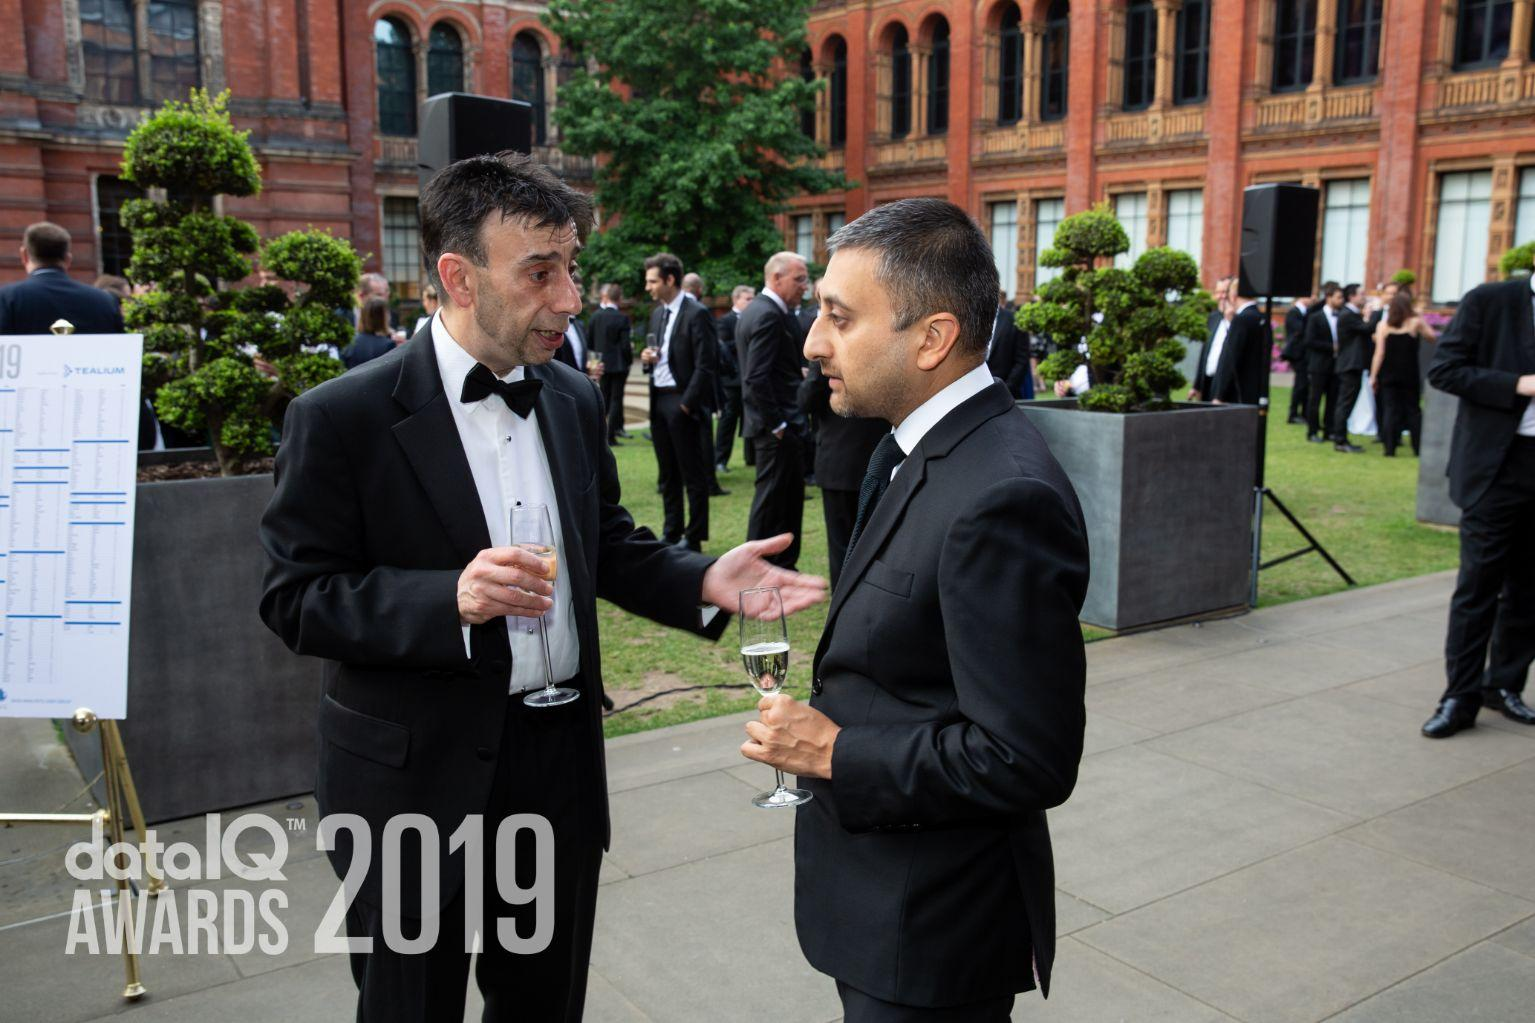 Awards 2019 Image 21